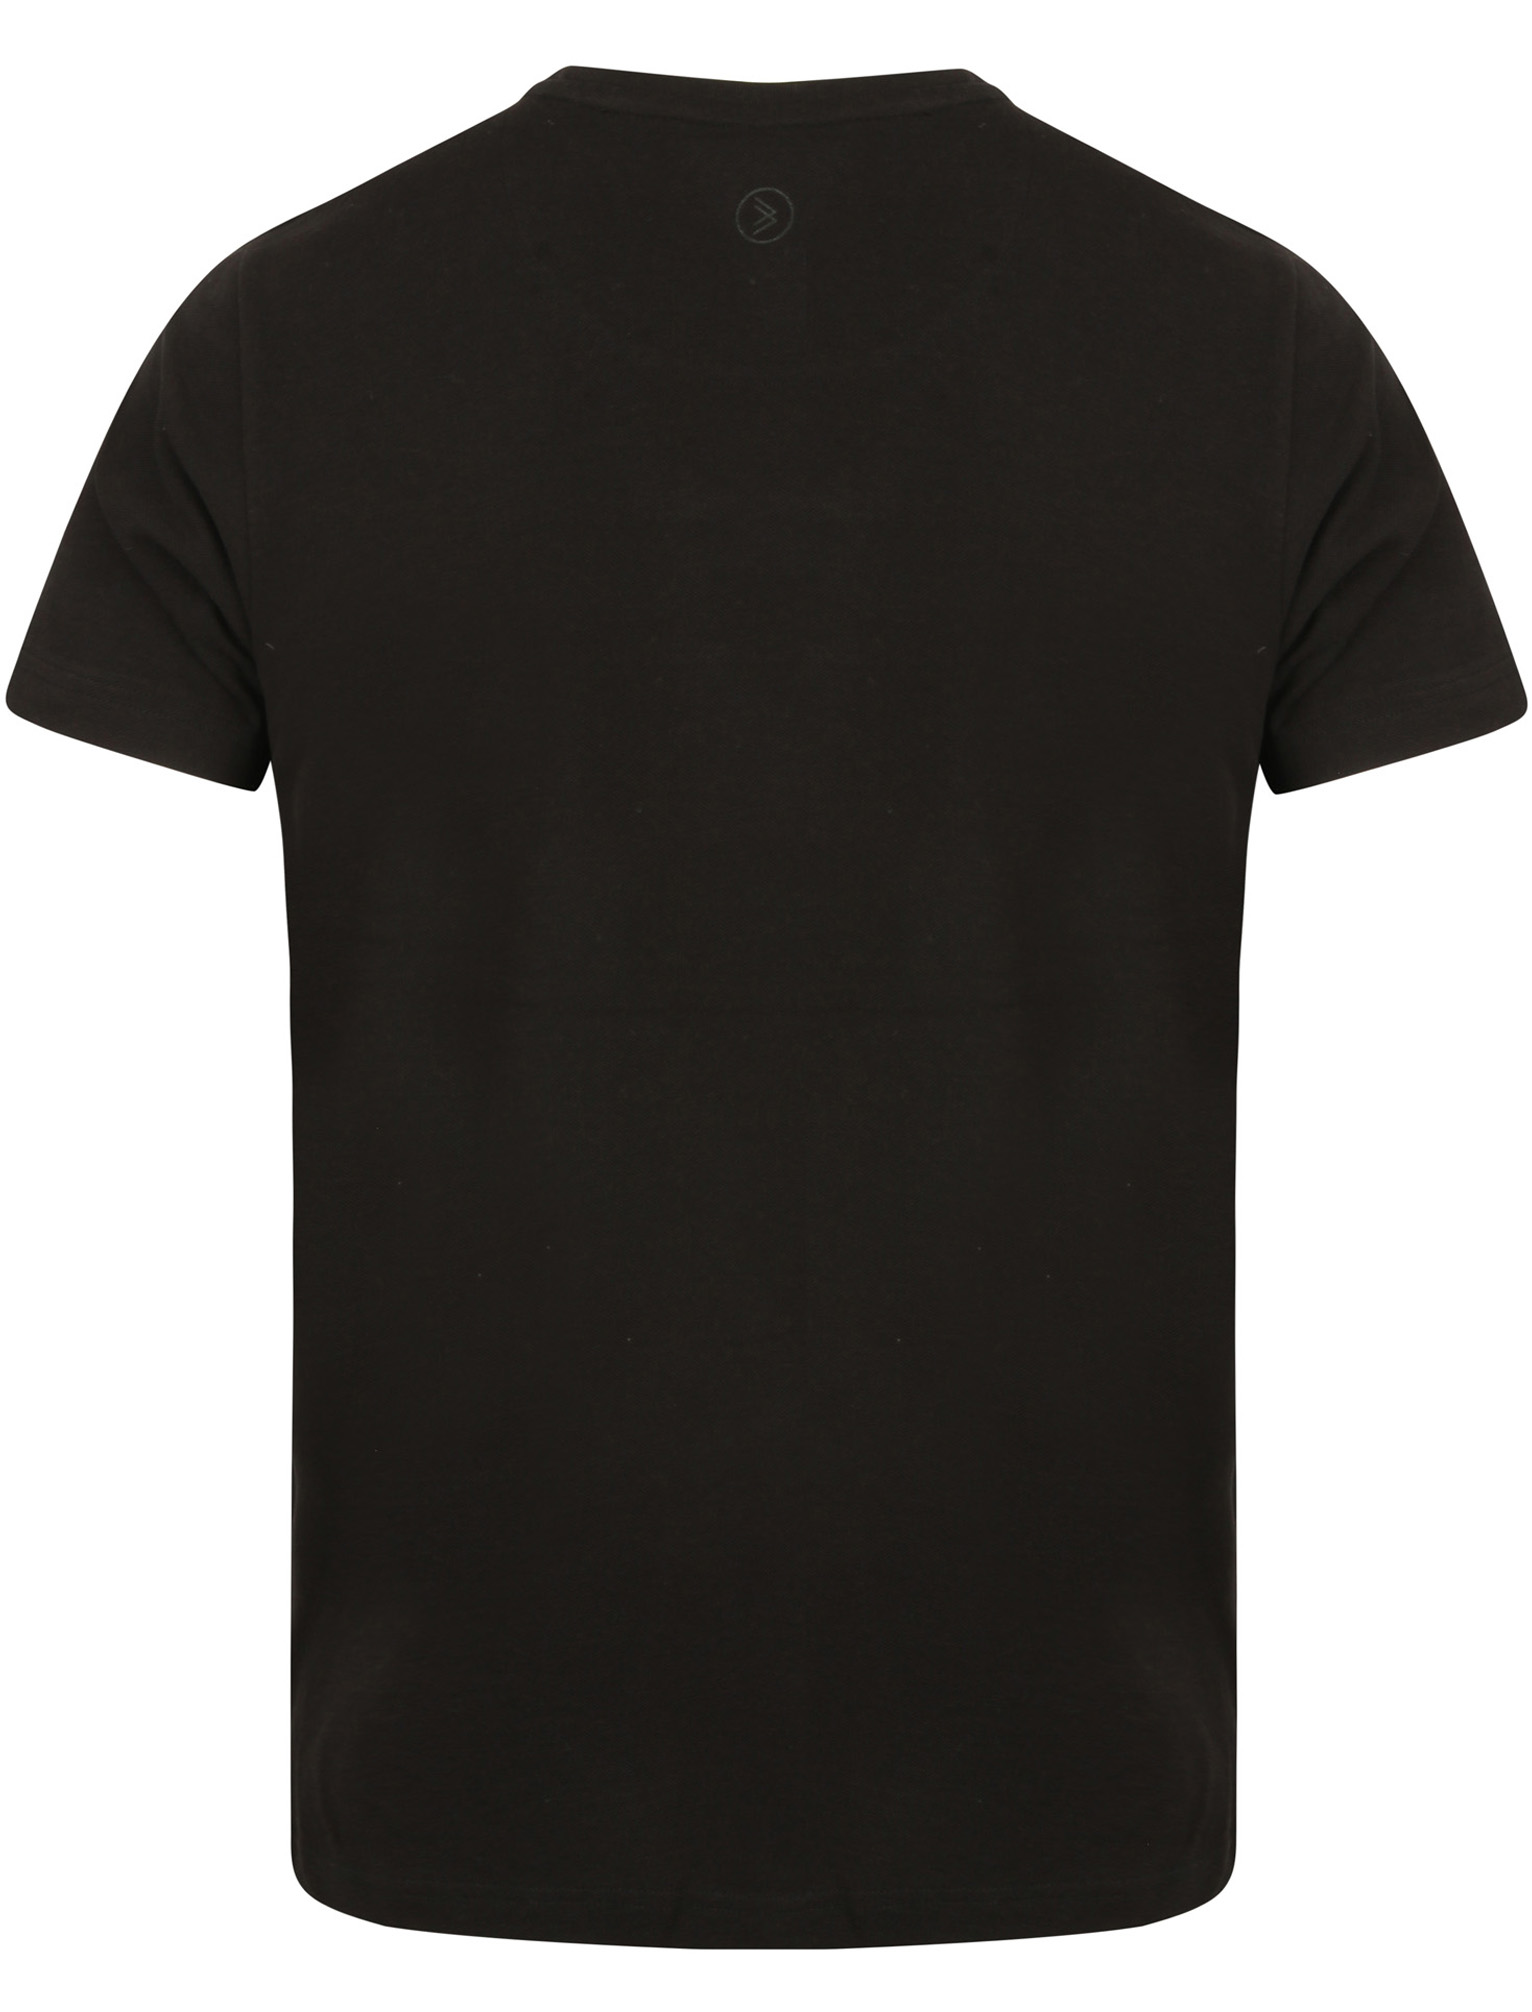 New-Mens-Dissident-Branded-Lecky-Cotton-Crew-Neck-Lightweight-T-Shirt-Size-S-XXL thumbnail 3